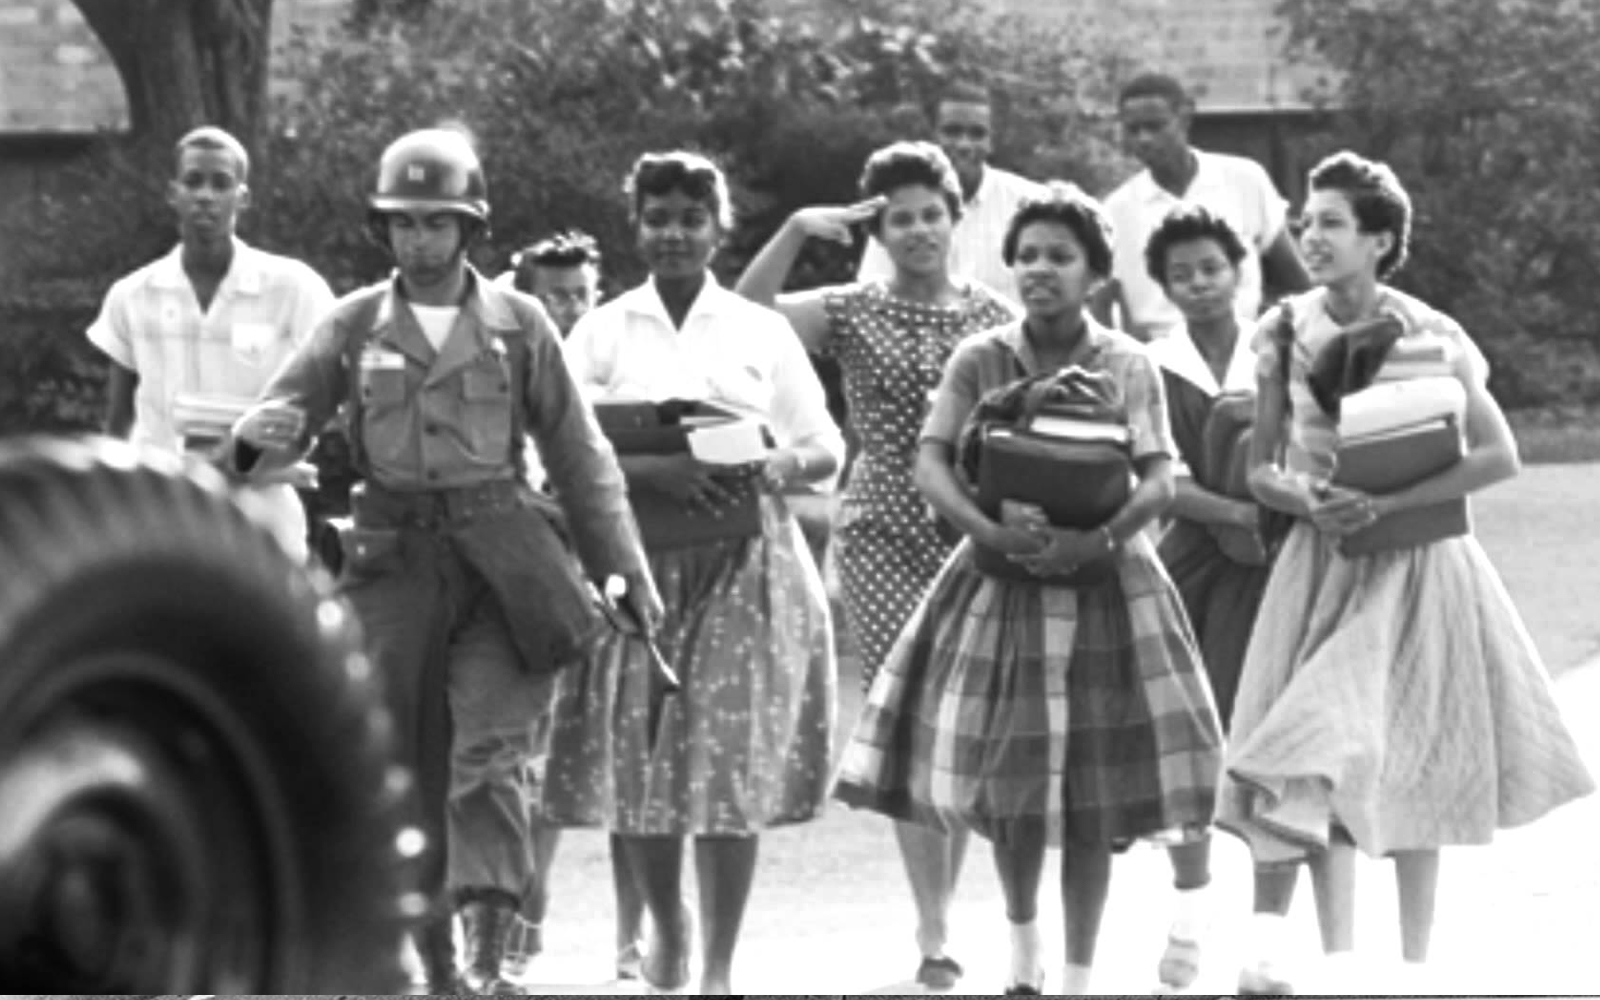 a courageous war of melba pattilo beals against racism It's 1967 and hollis is a seventh-grader in long island during the vietnam war beals the story: in 1957, melba pattillo racism triumph over adversity courage.